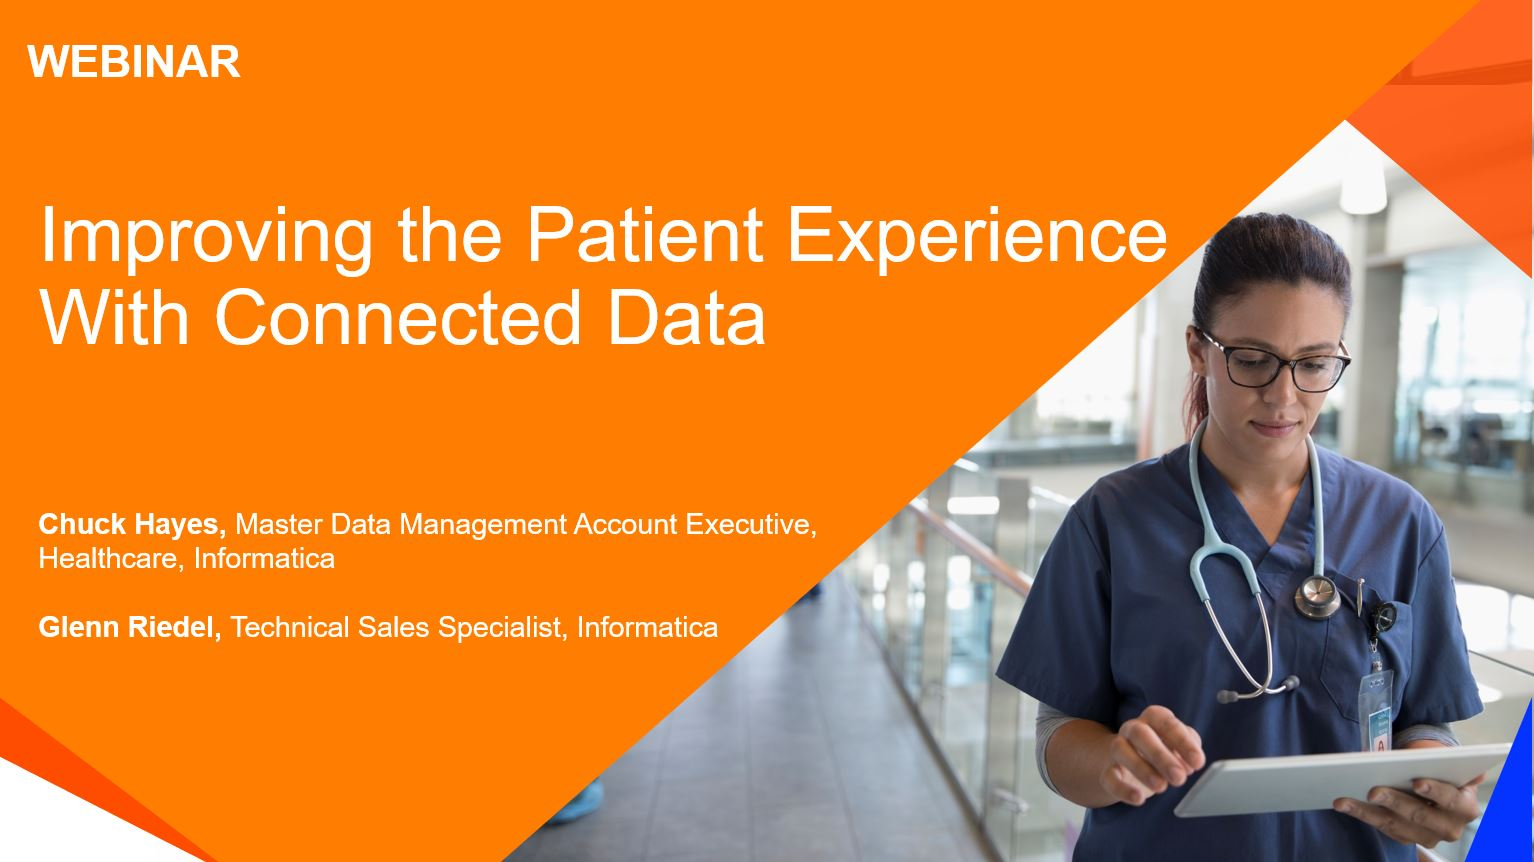 rm01-improving-the-patient-experience-with-connected-data_2191240